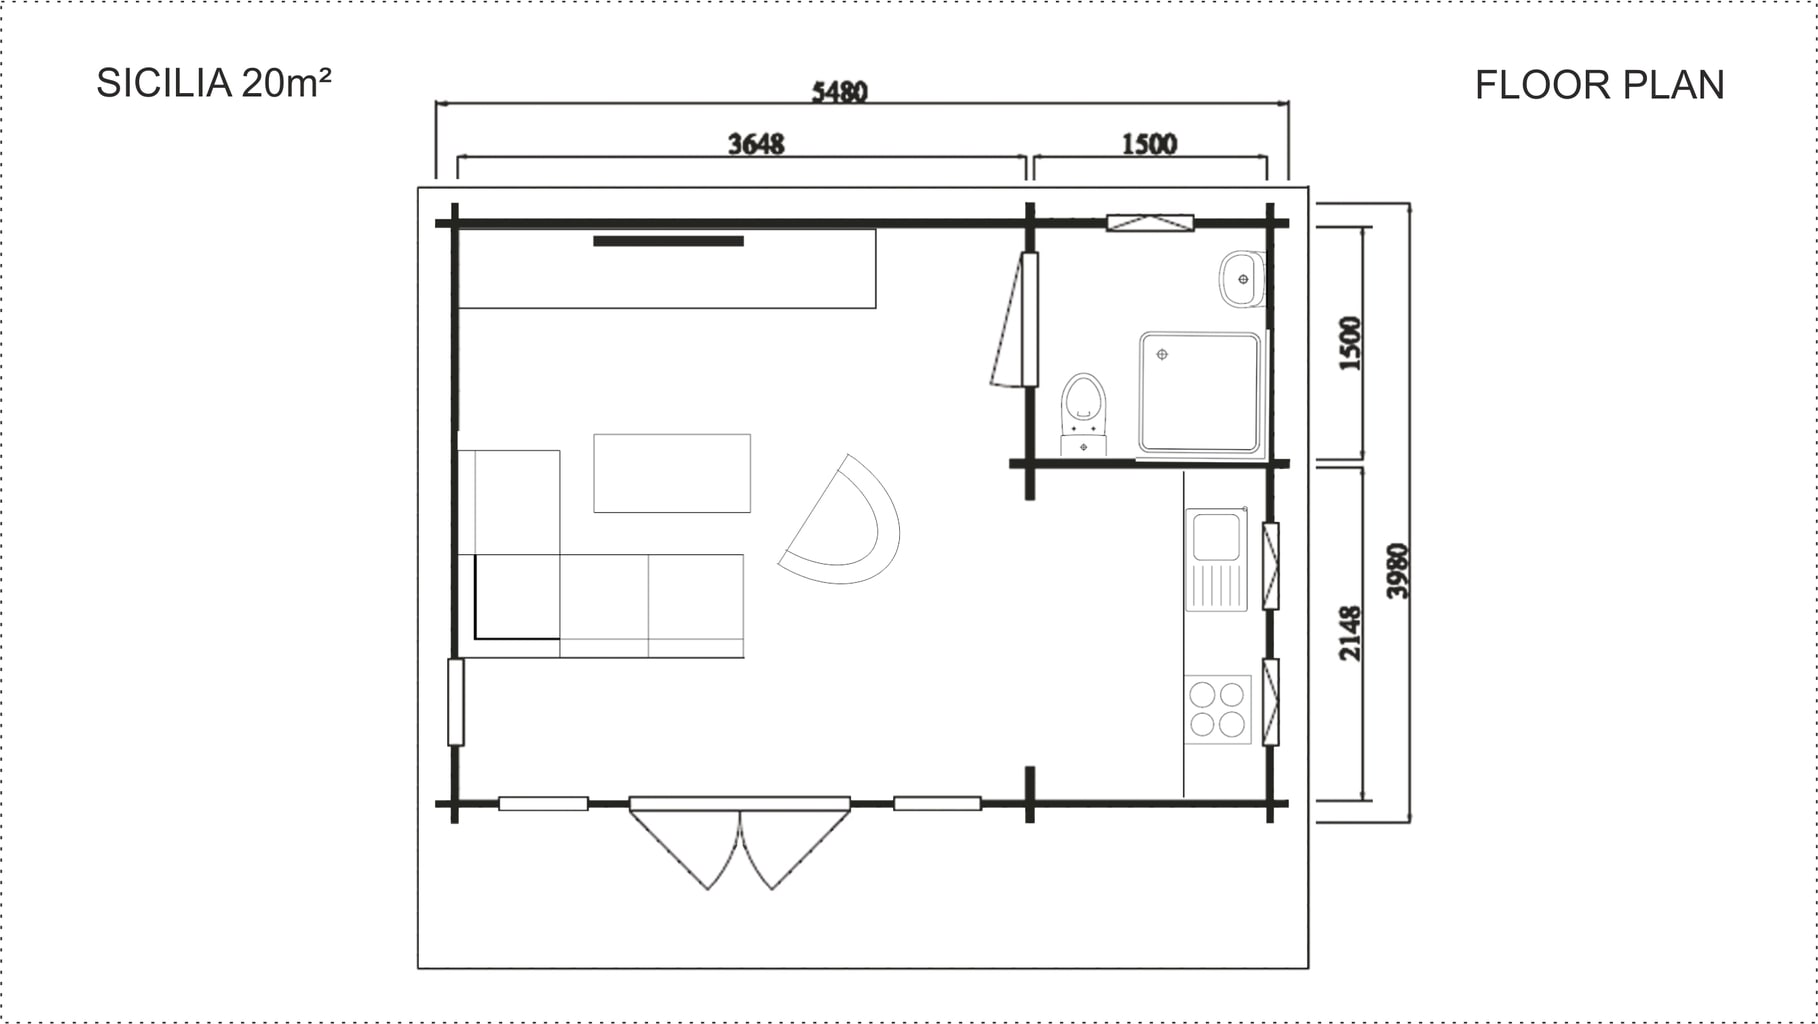 backyard cabin Sicilia floor plan